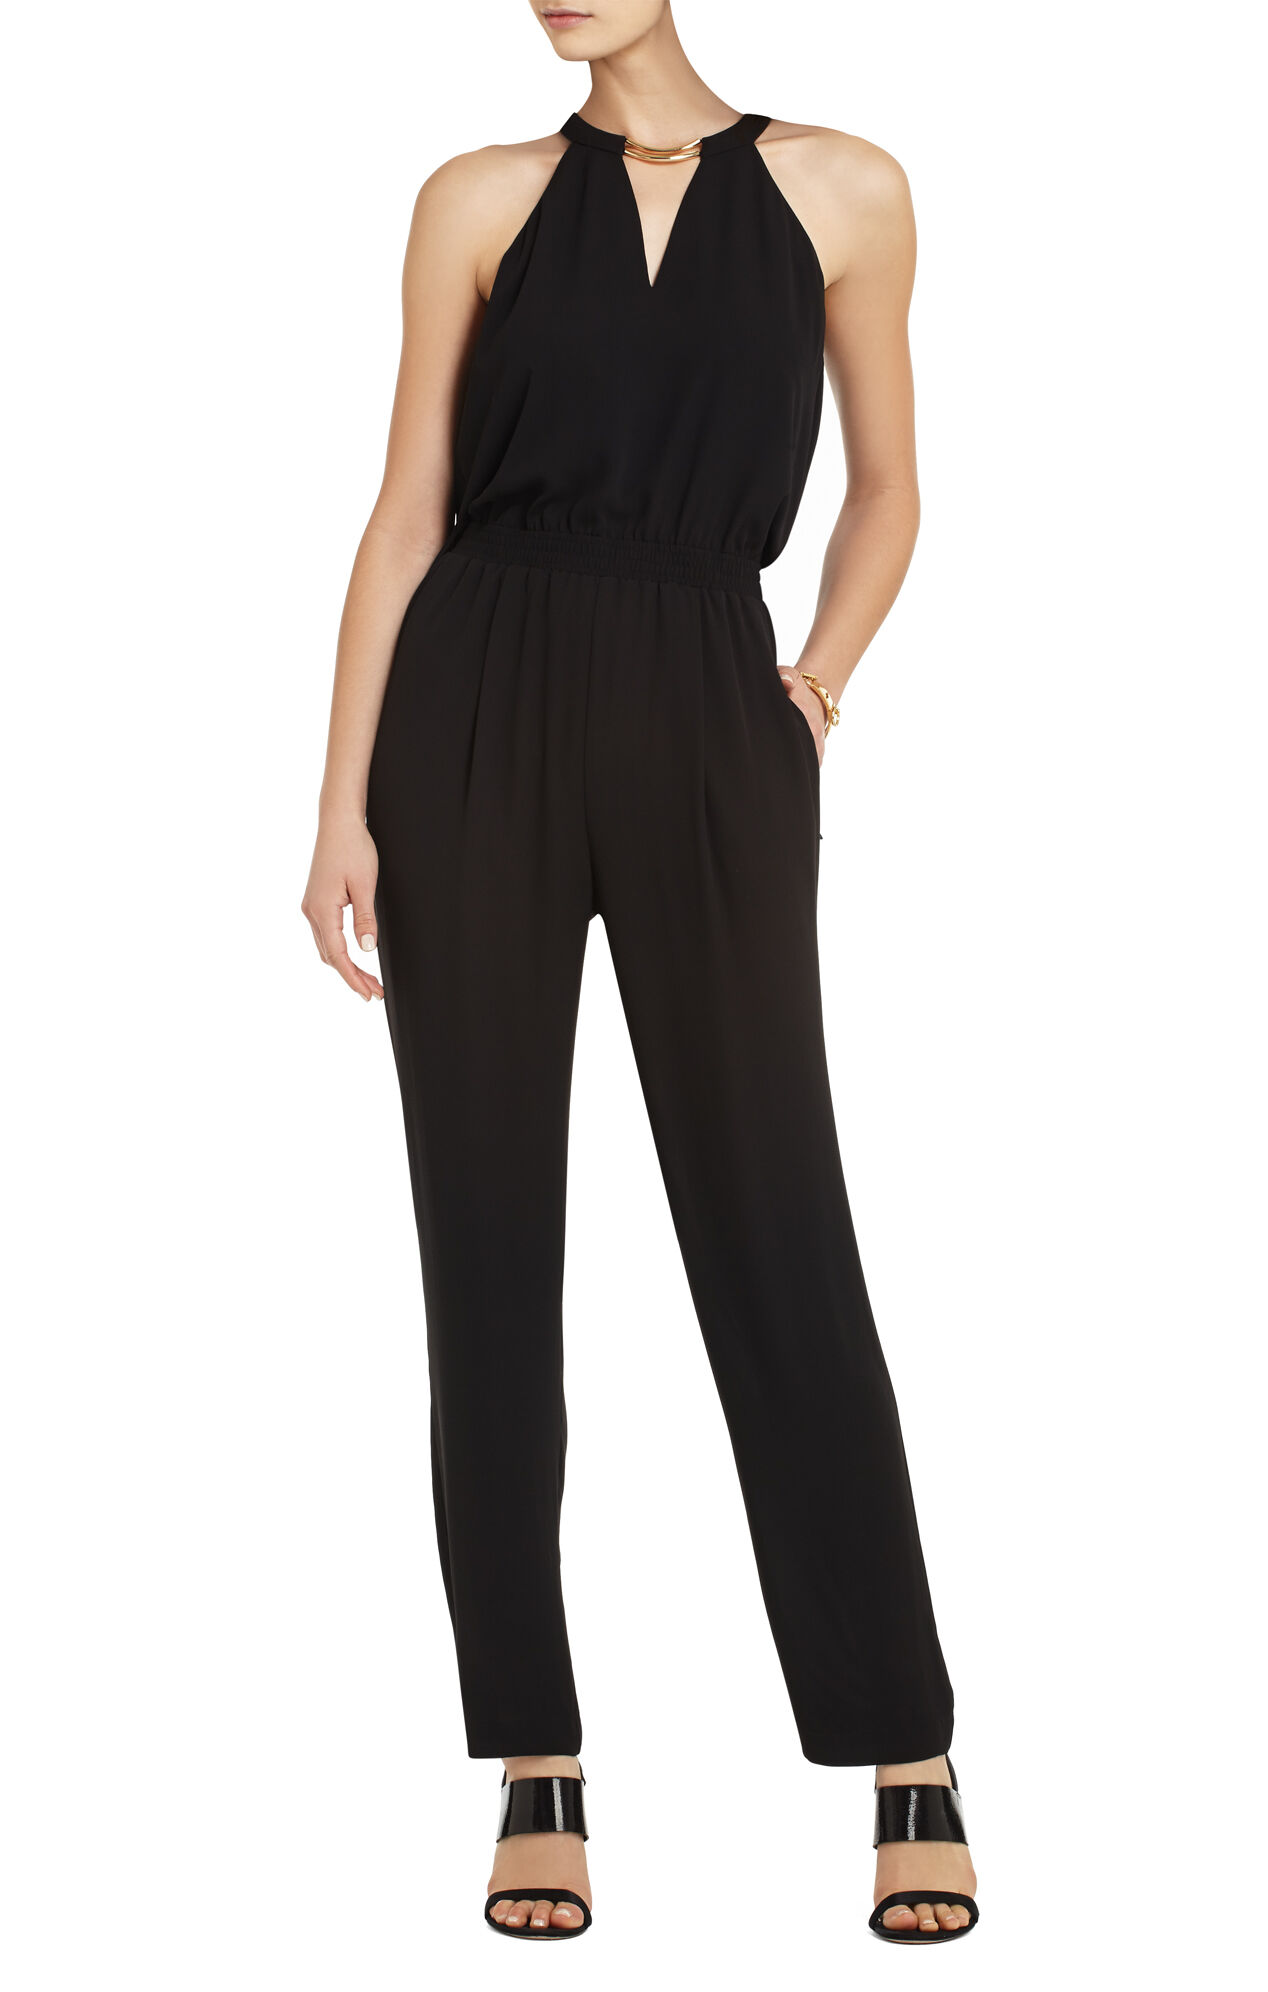 Zoelle Halter-Top Jumpsuit